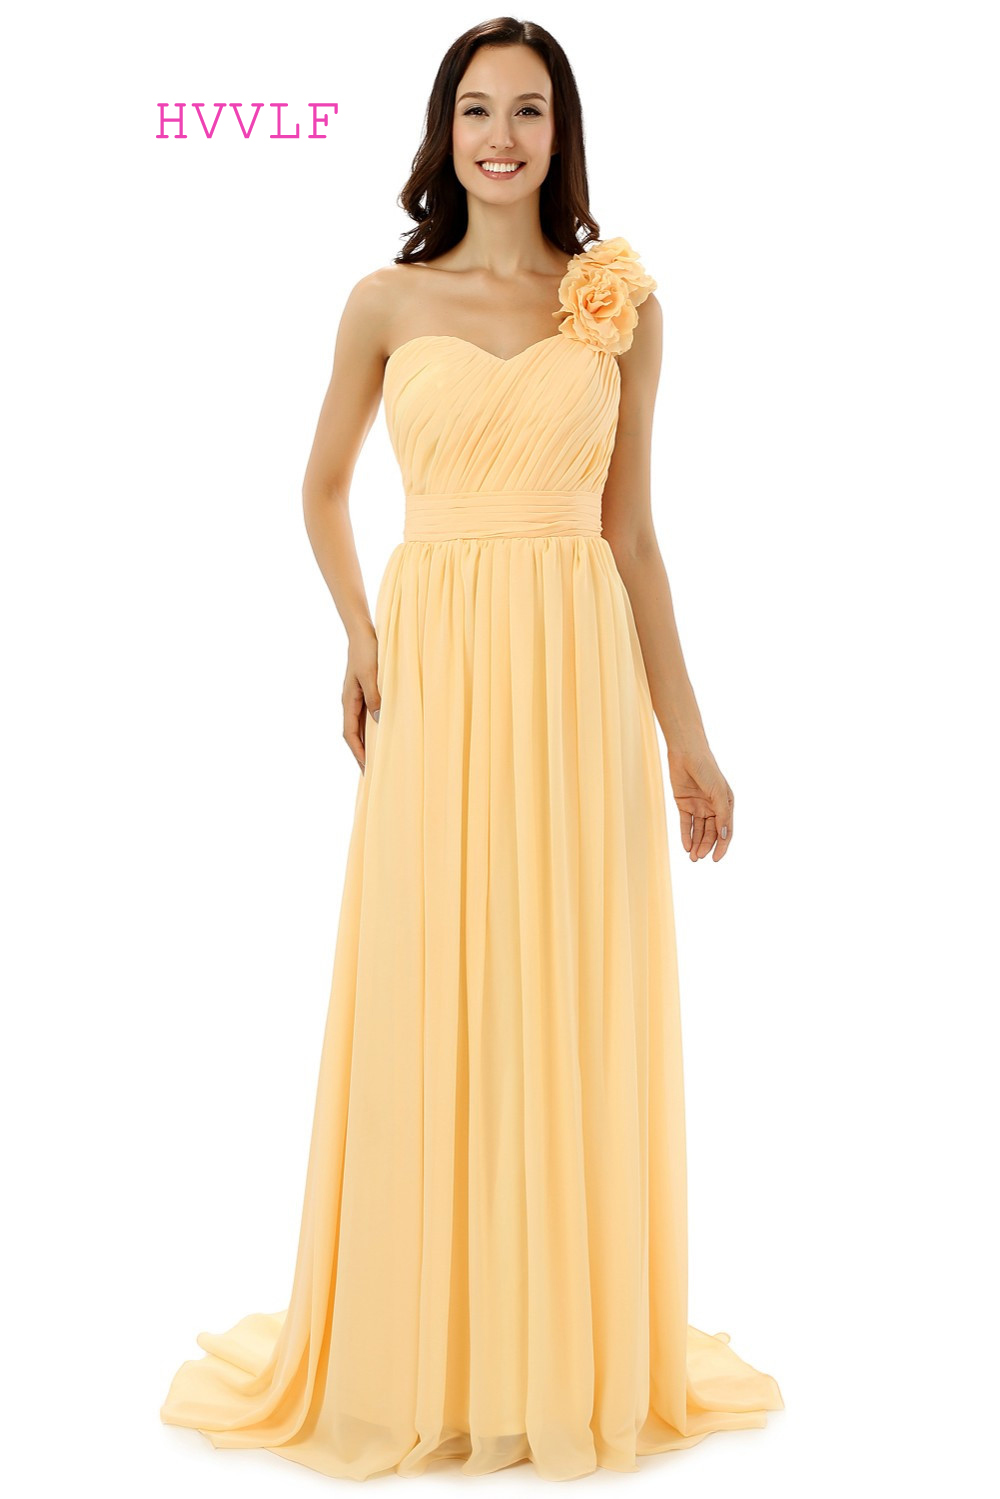 HVVLF 2019 Cheap   Bridesmaid     Dresses   Under 50 A-line One-shoulder Floor Length Yellow Chiffon Wedding Party   Dresses